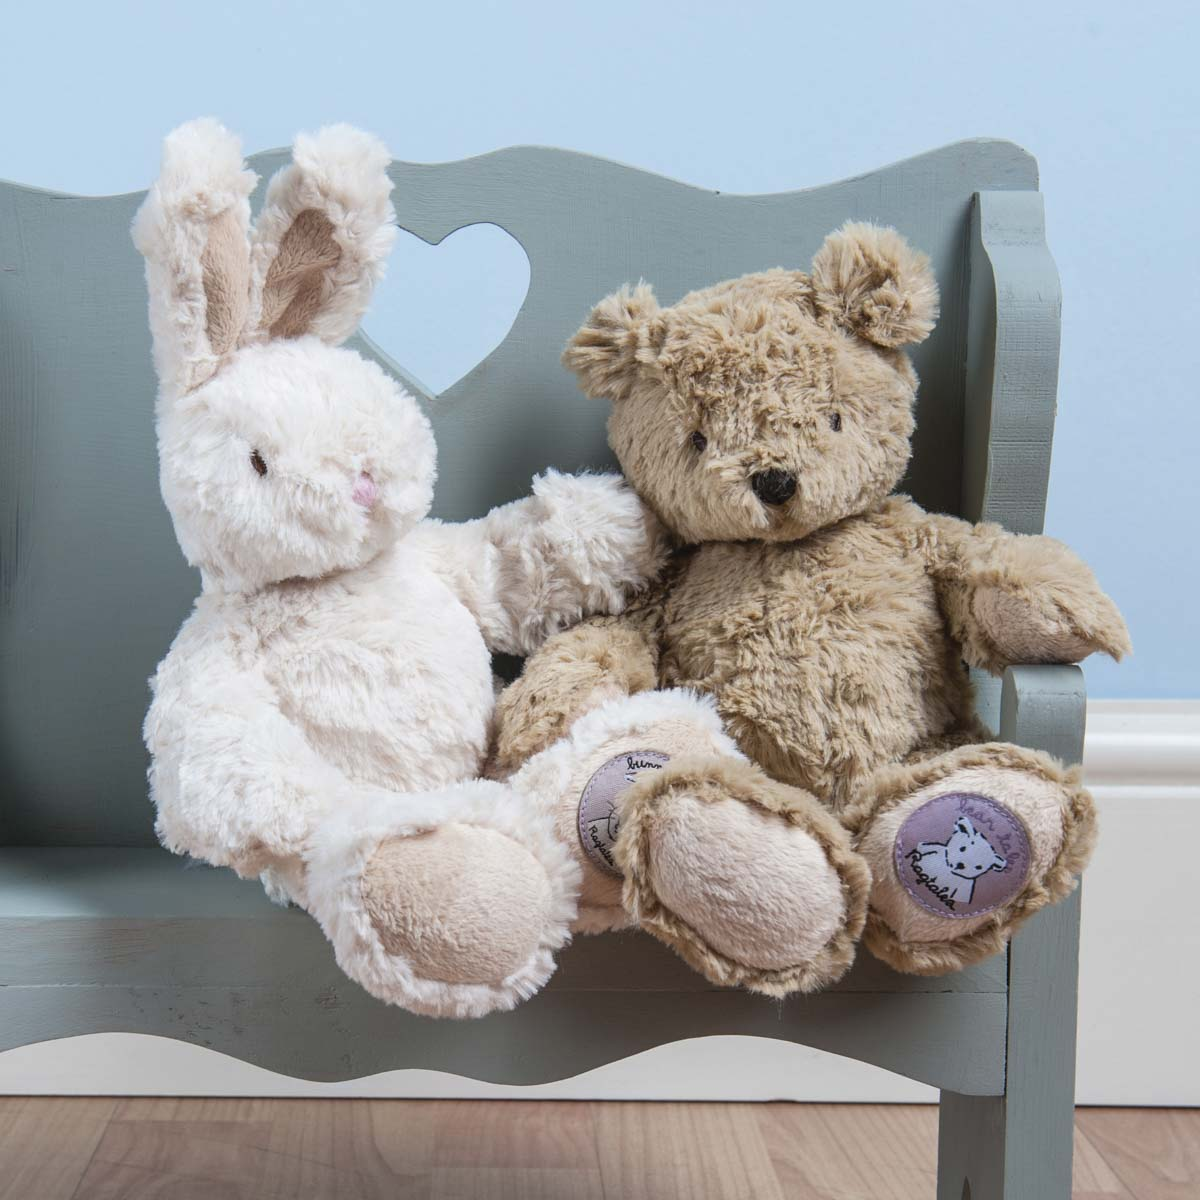 Baby Bo | Bunny Rabbit Soft Toy from Ragtales Ltd